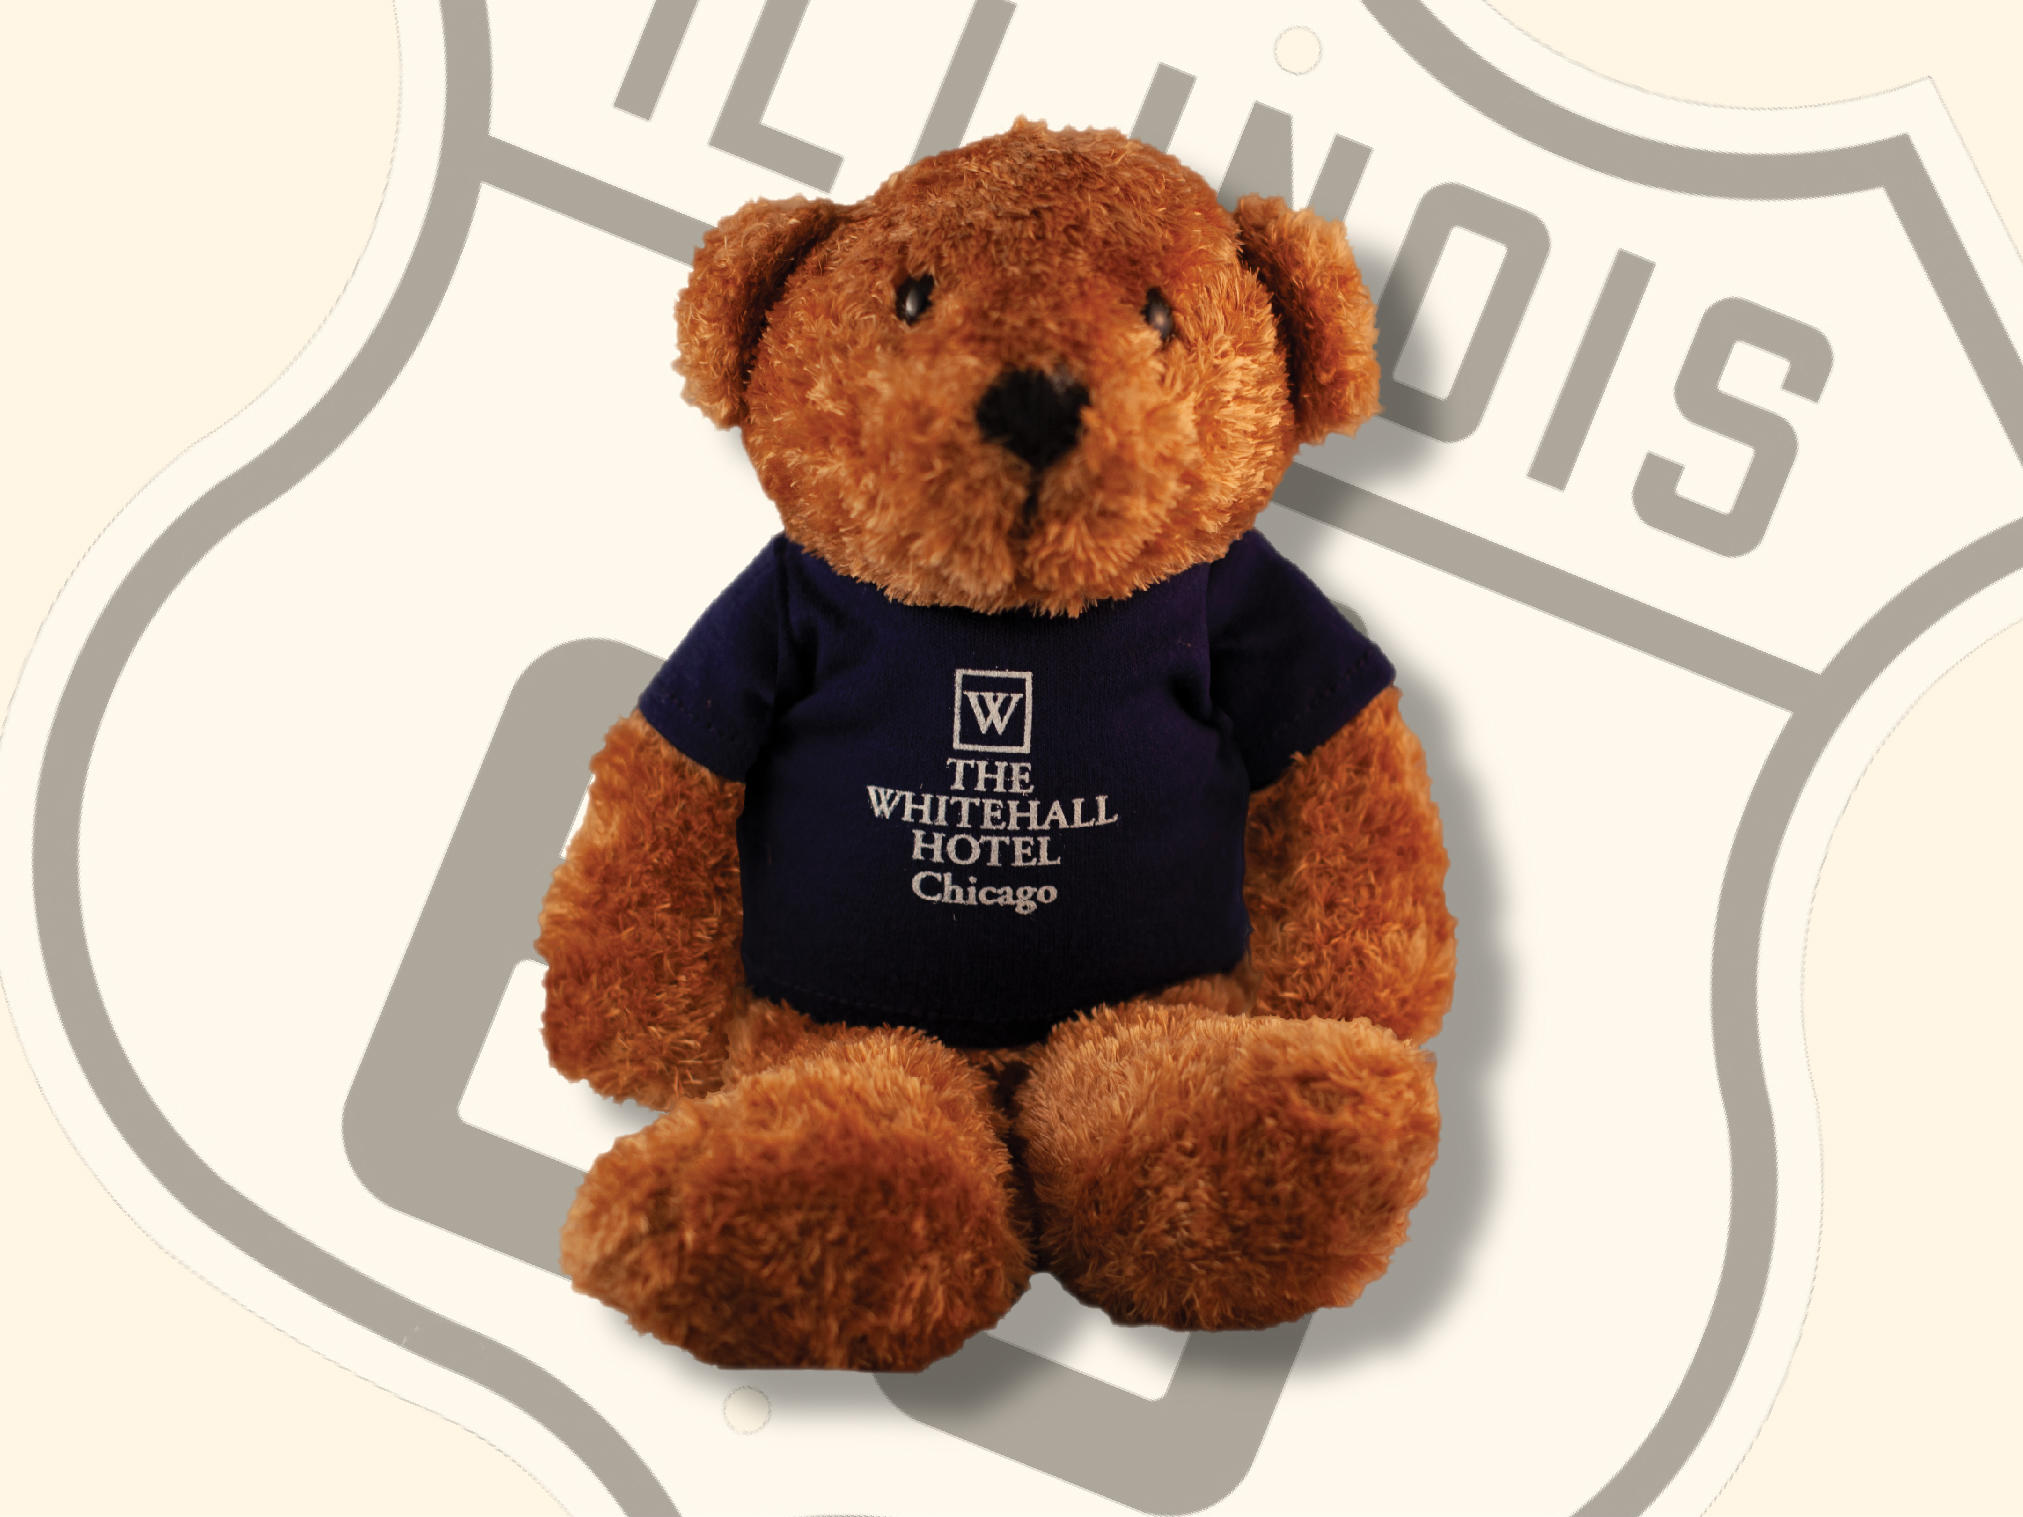 Teddy bear in The Whitehall Hotel shirt